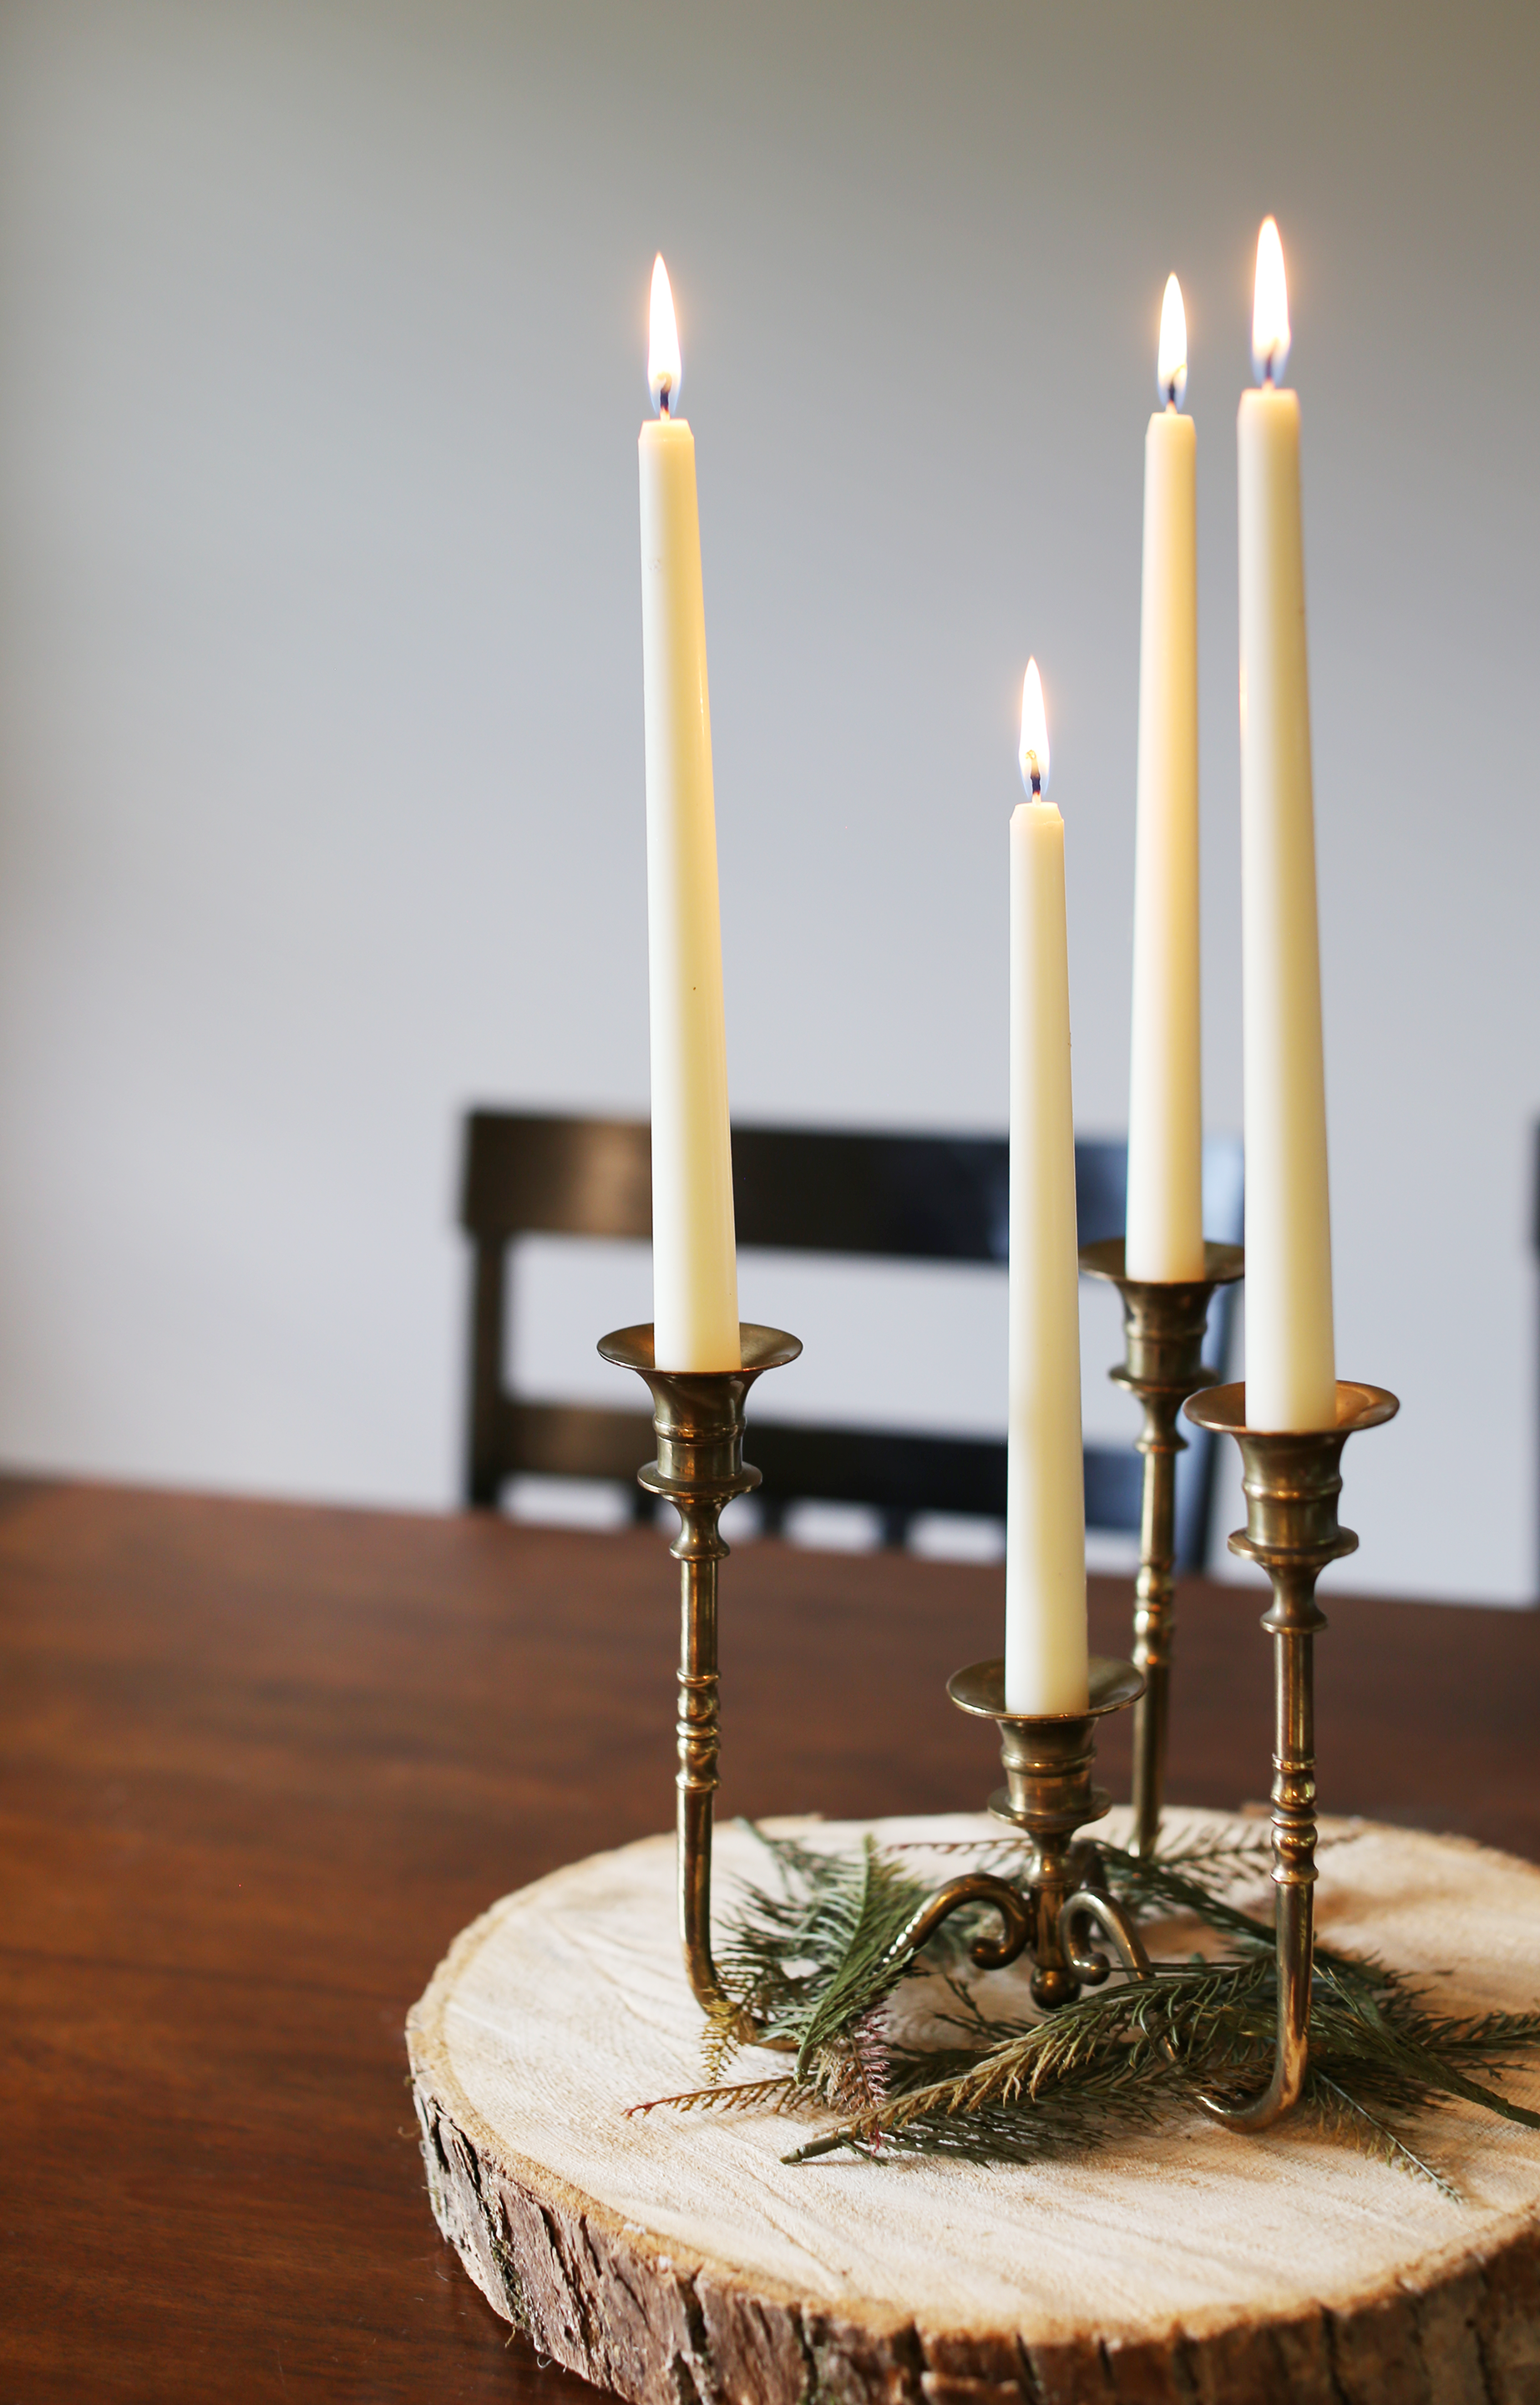 Solid Brass Pillar Candlestick Holder Perfect For Weddings